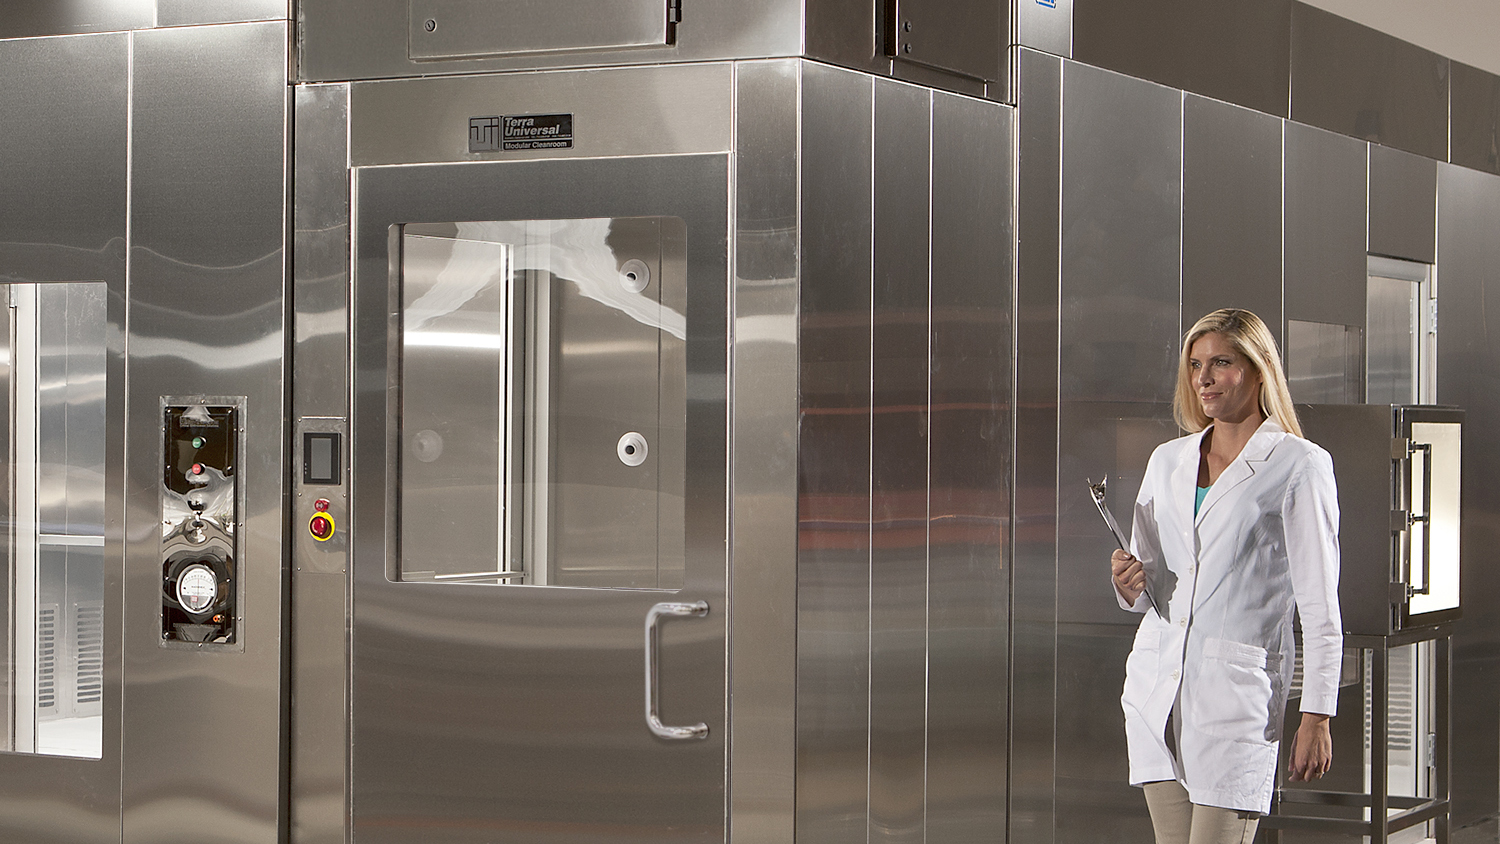 ISO 14644 Types of Cleanrooms & Components | Comparison & Features Guide